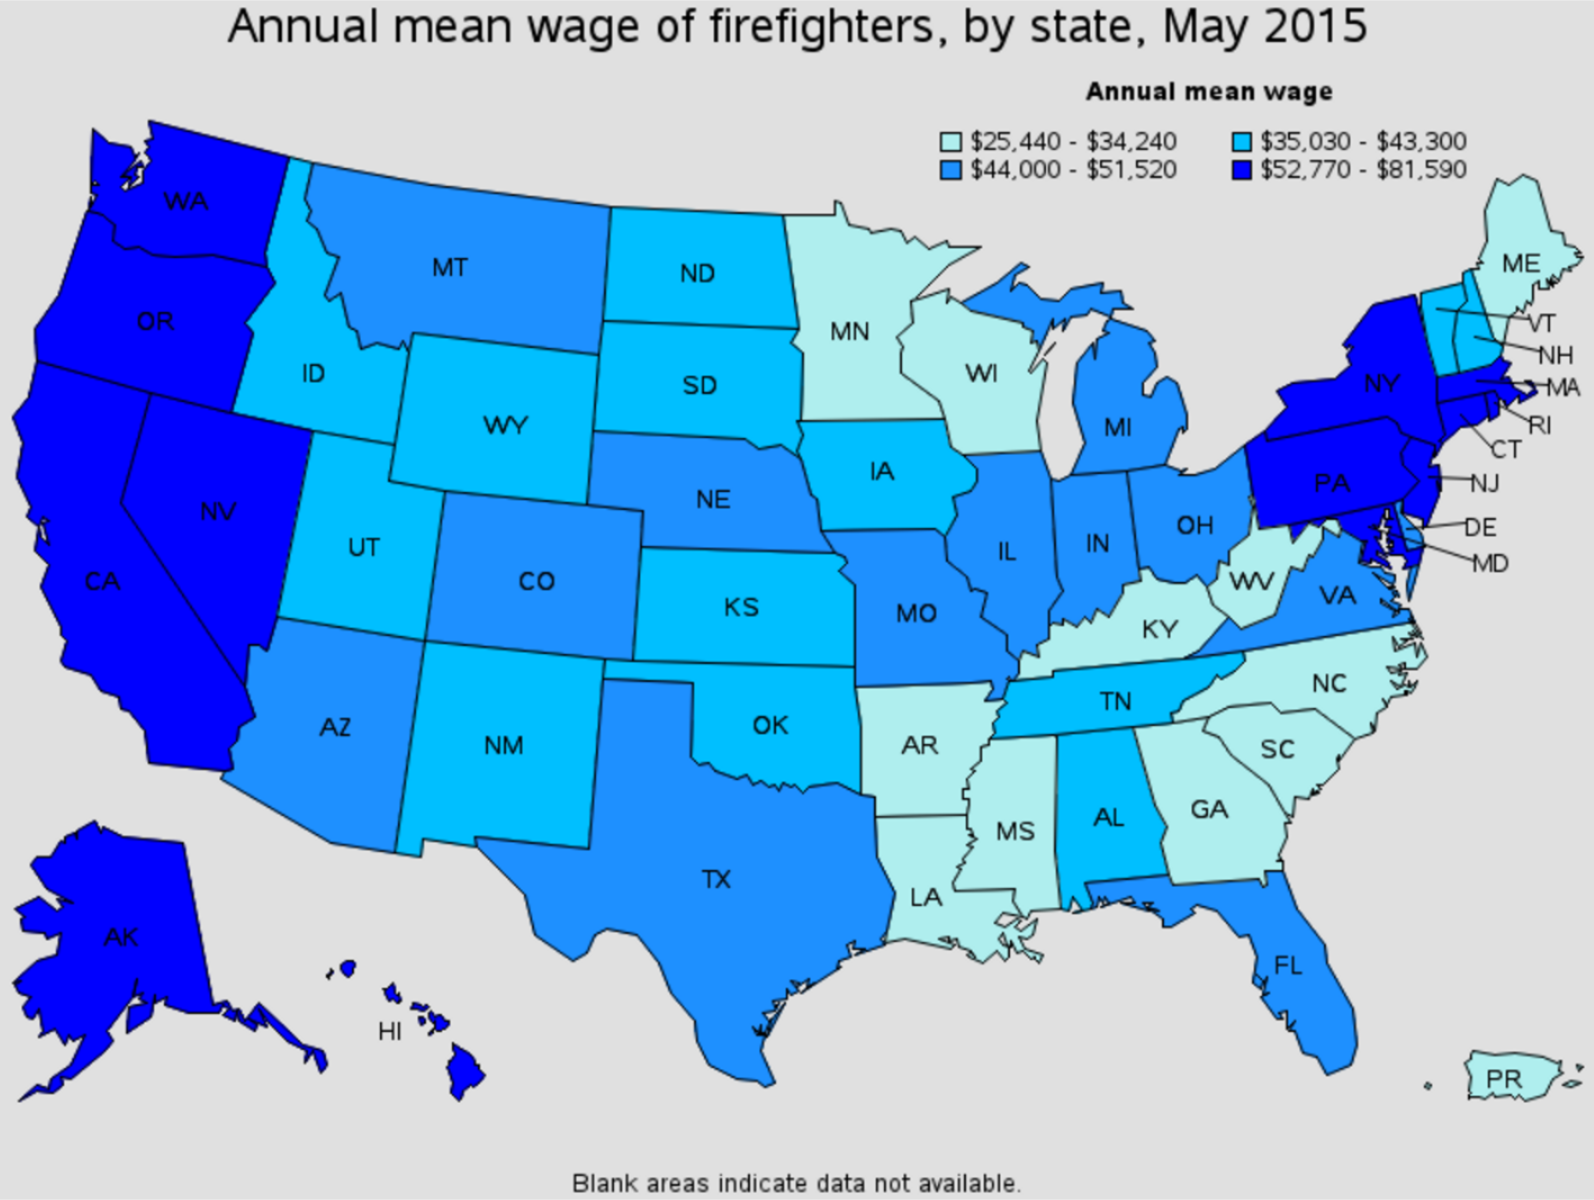 firefighter average salary by state Westport Kentucky